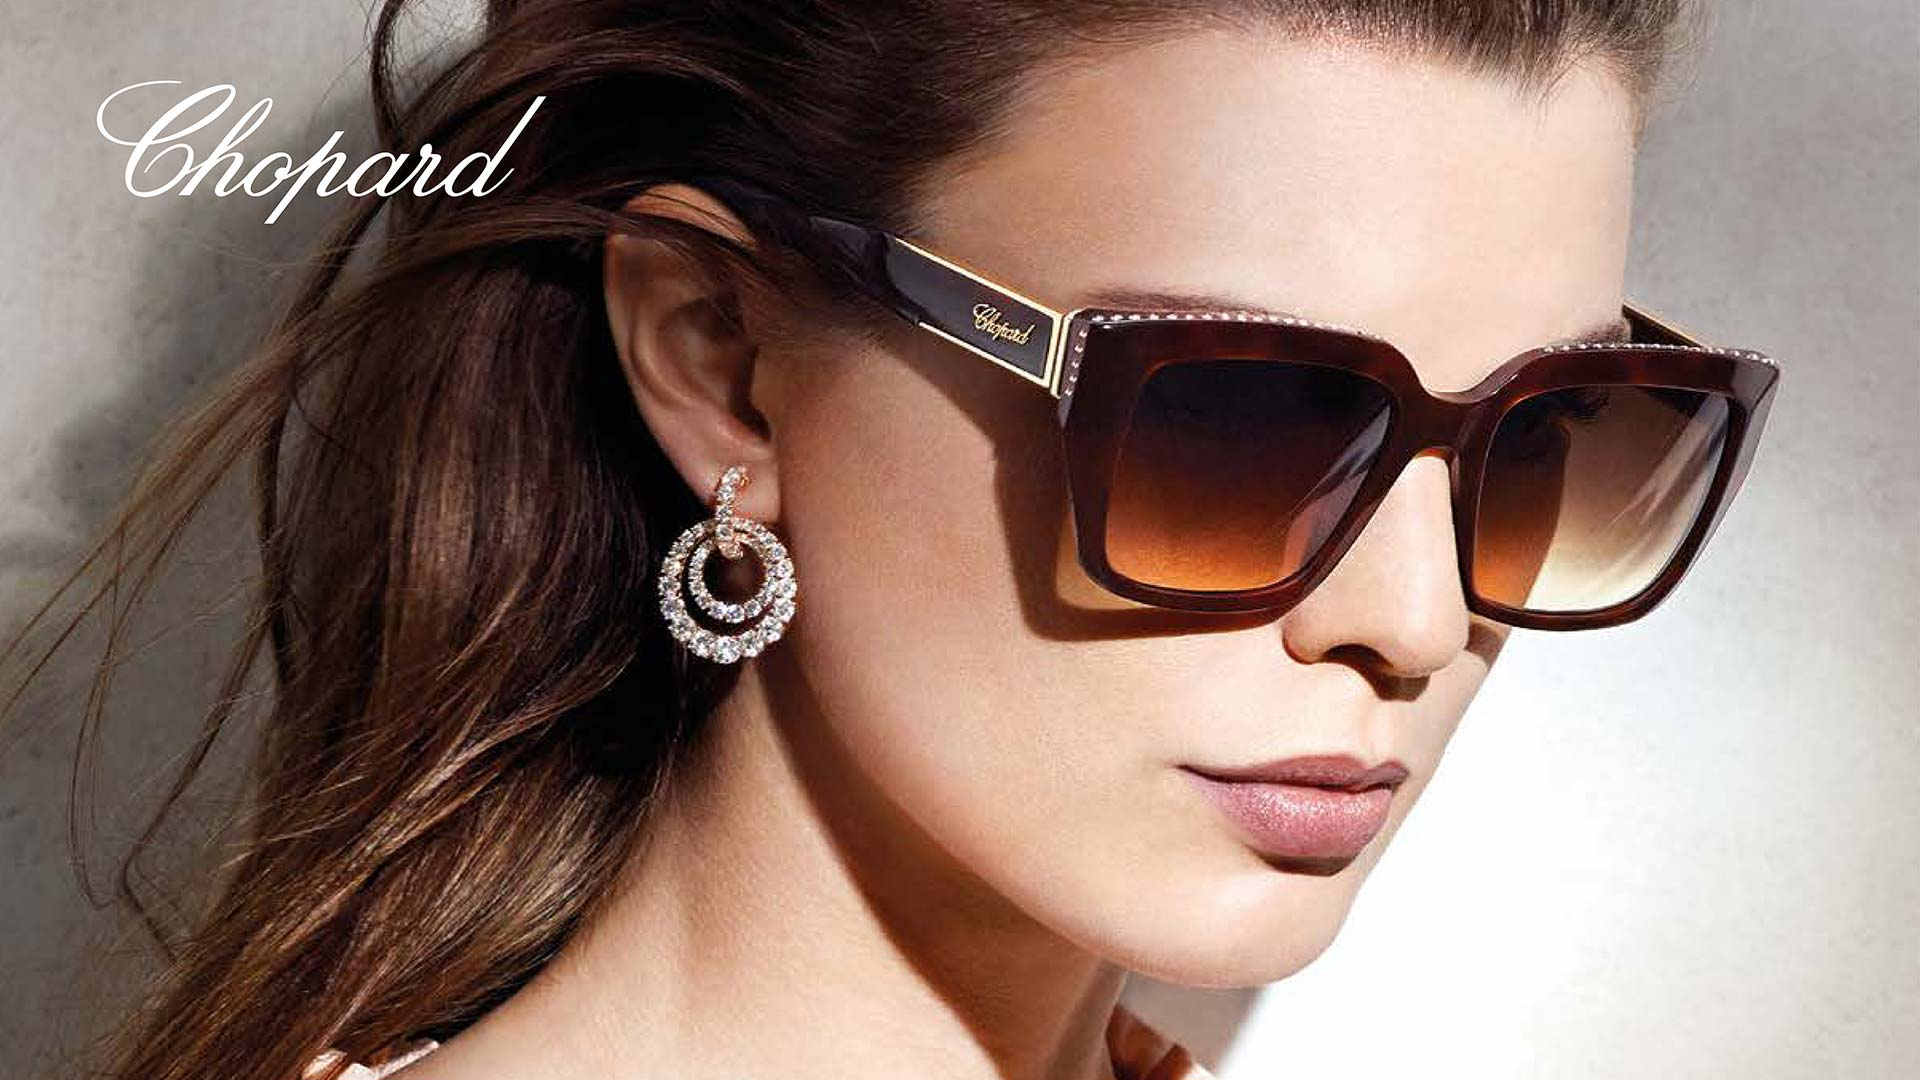 EGF-Consulting-Home-Slide-Chopard_03